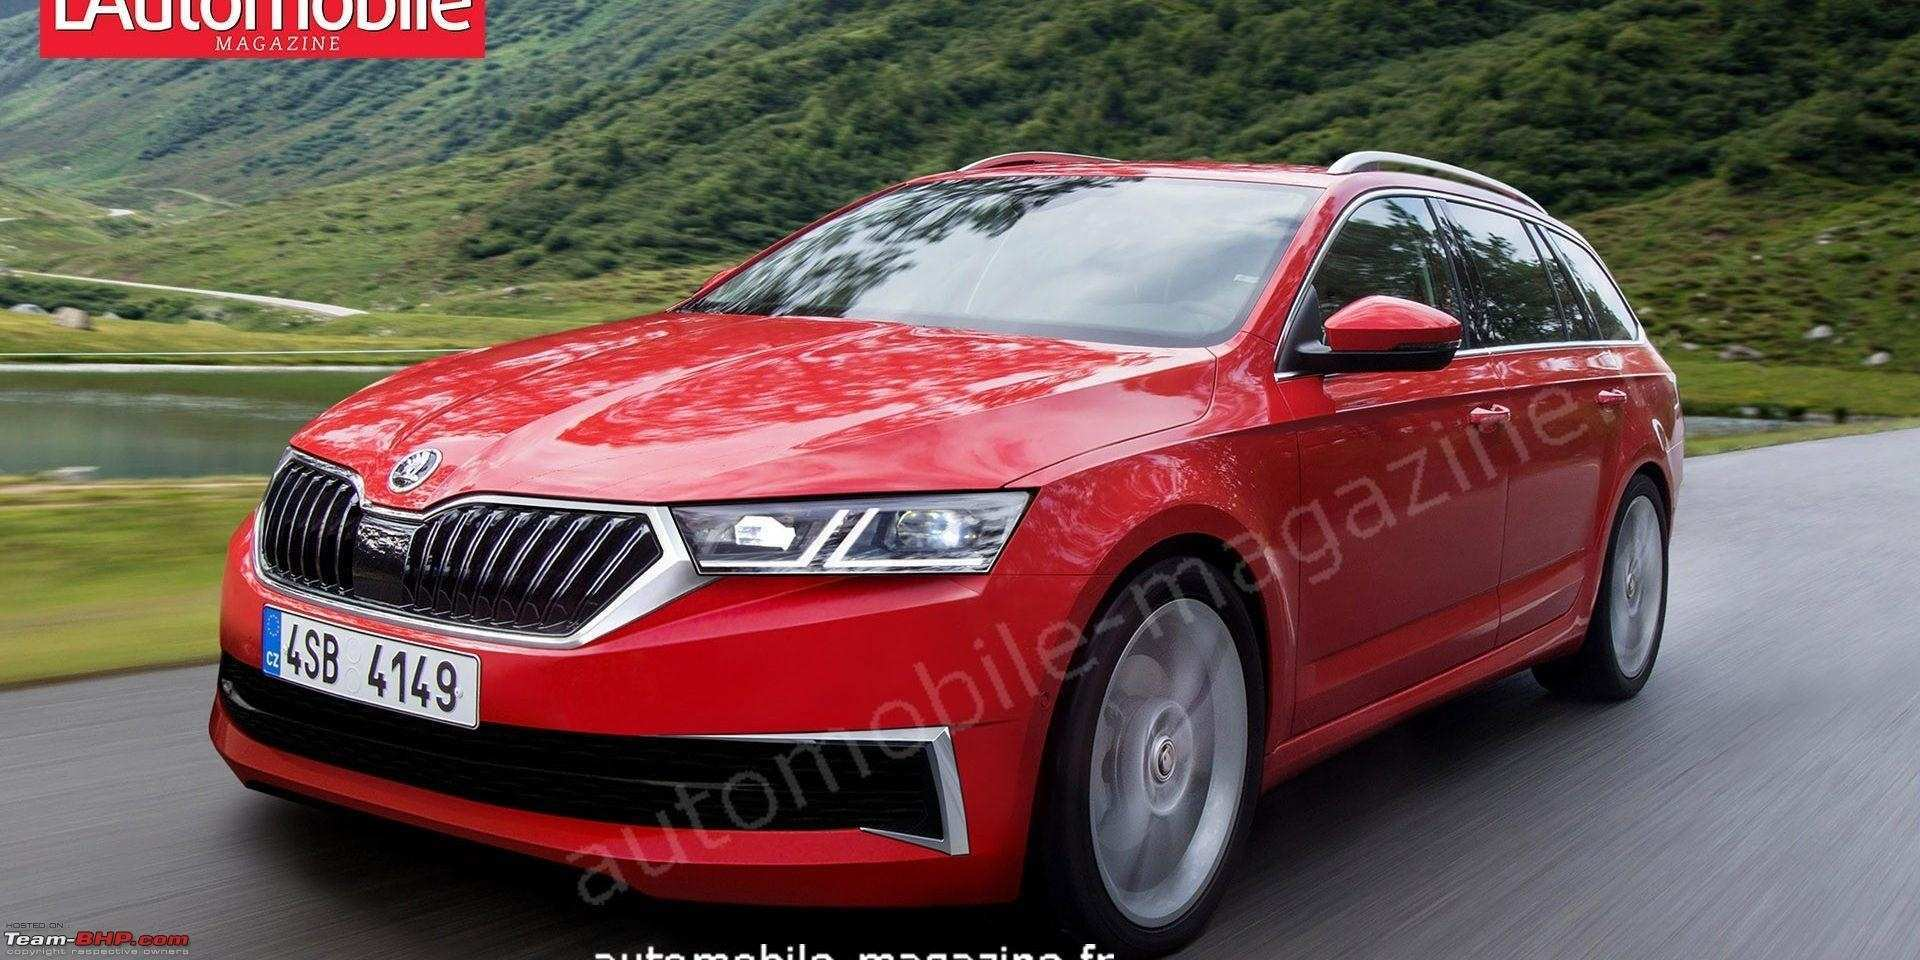 63 A 2020 Skoda Octavia Performance